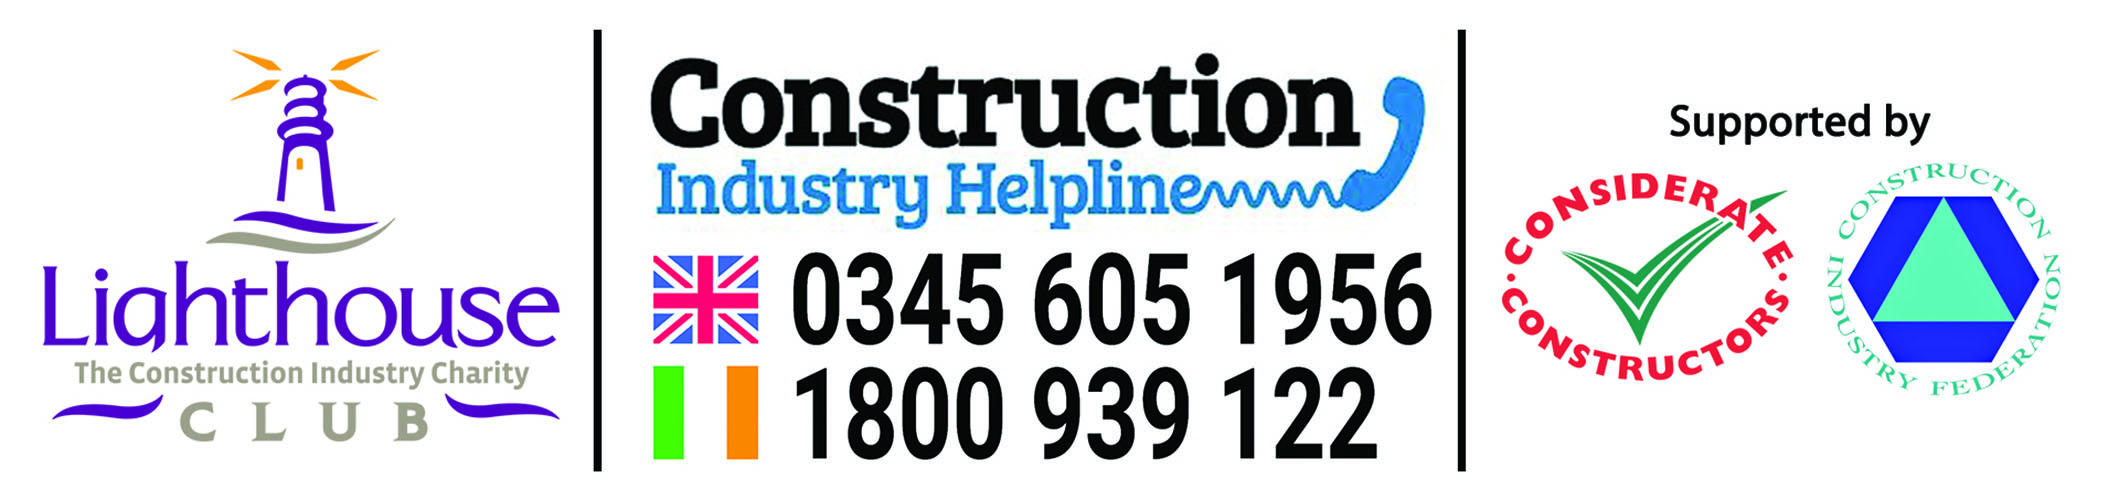 Construction Industry Helplin